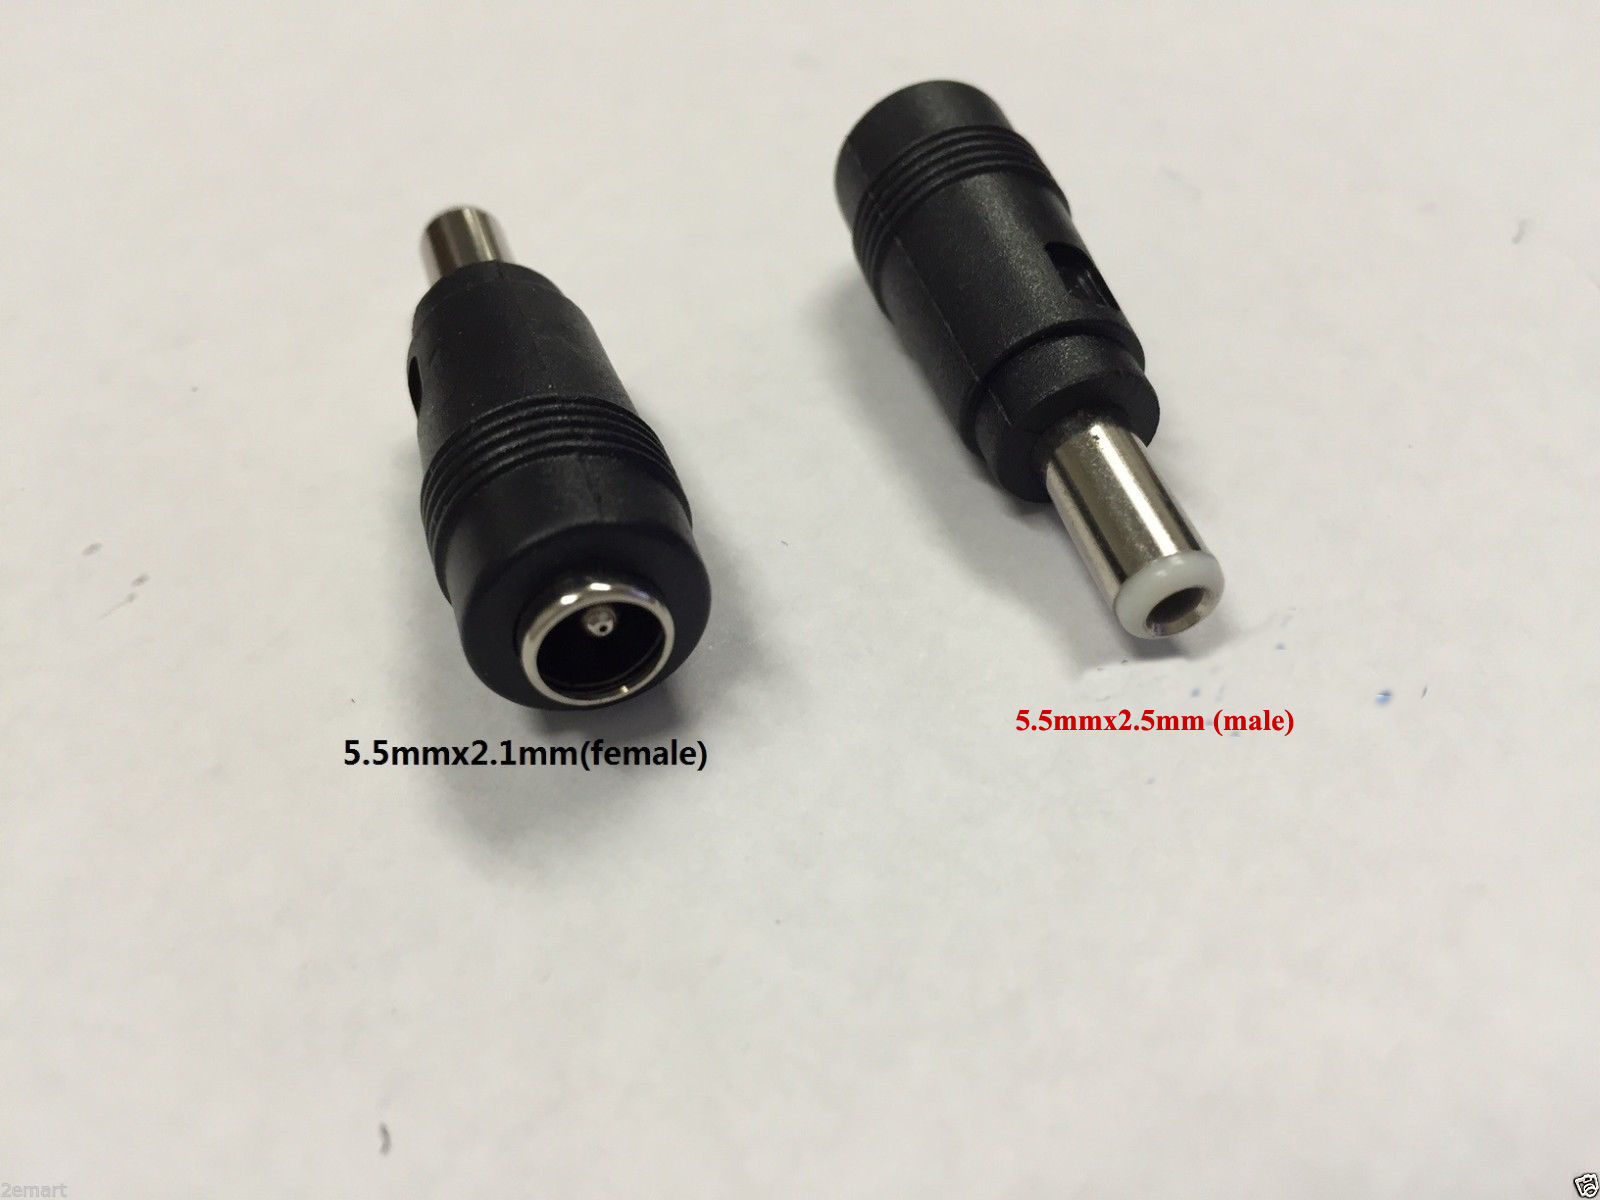 DC Power 5.5x2.5mm Male Plug to 5.5x2.1mm Female Jack Adapter